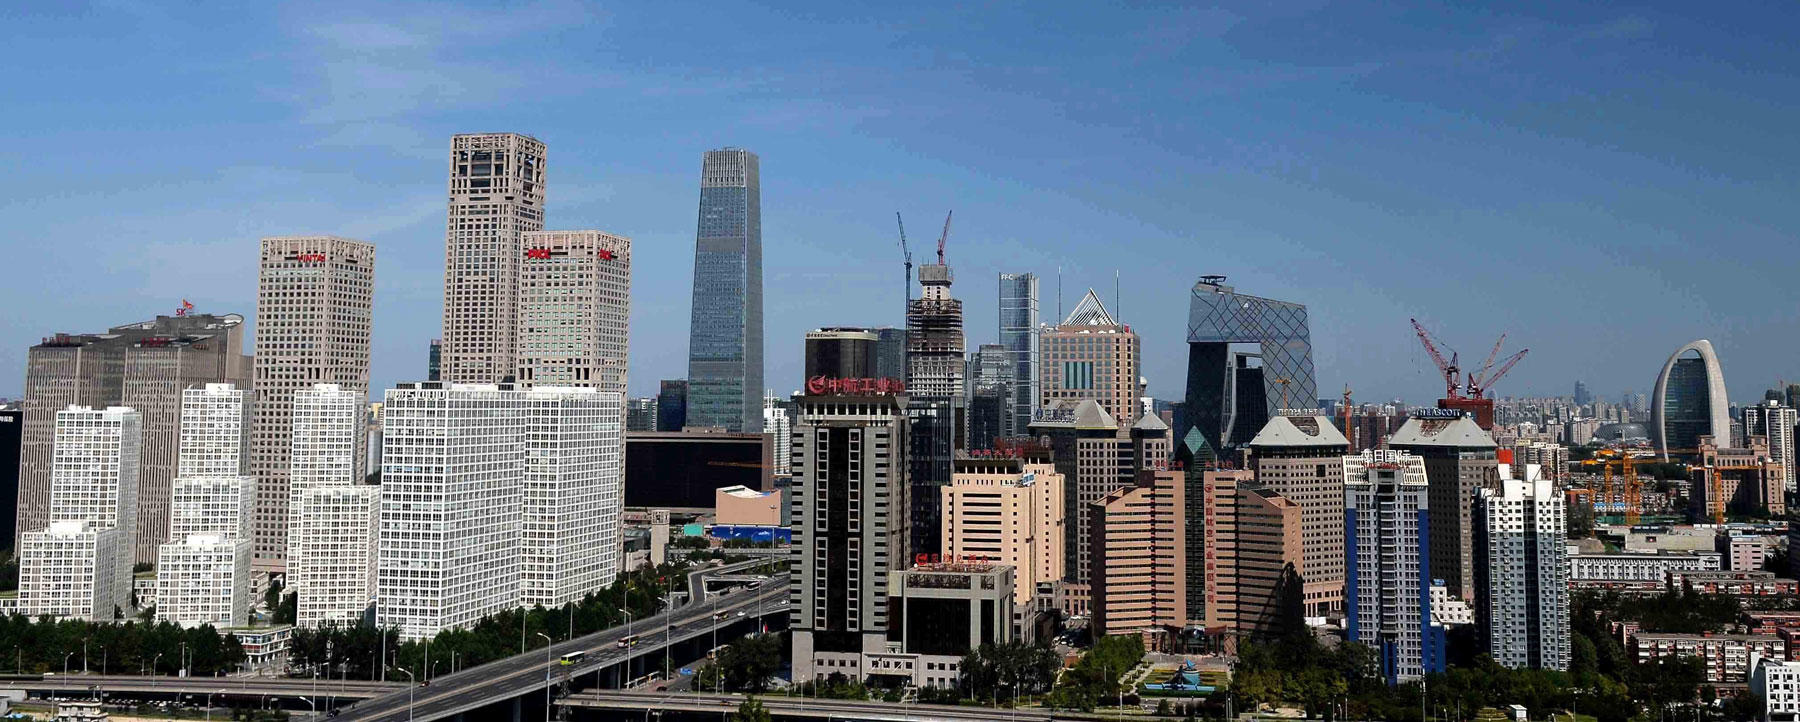 Blue skies over Beijing on September 3